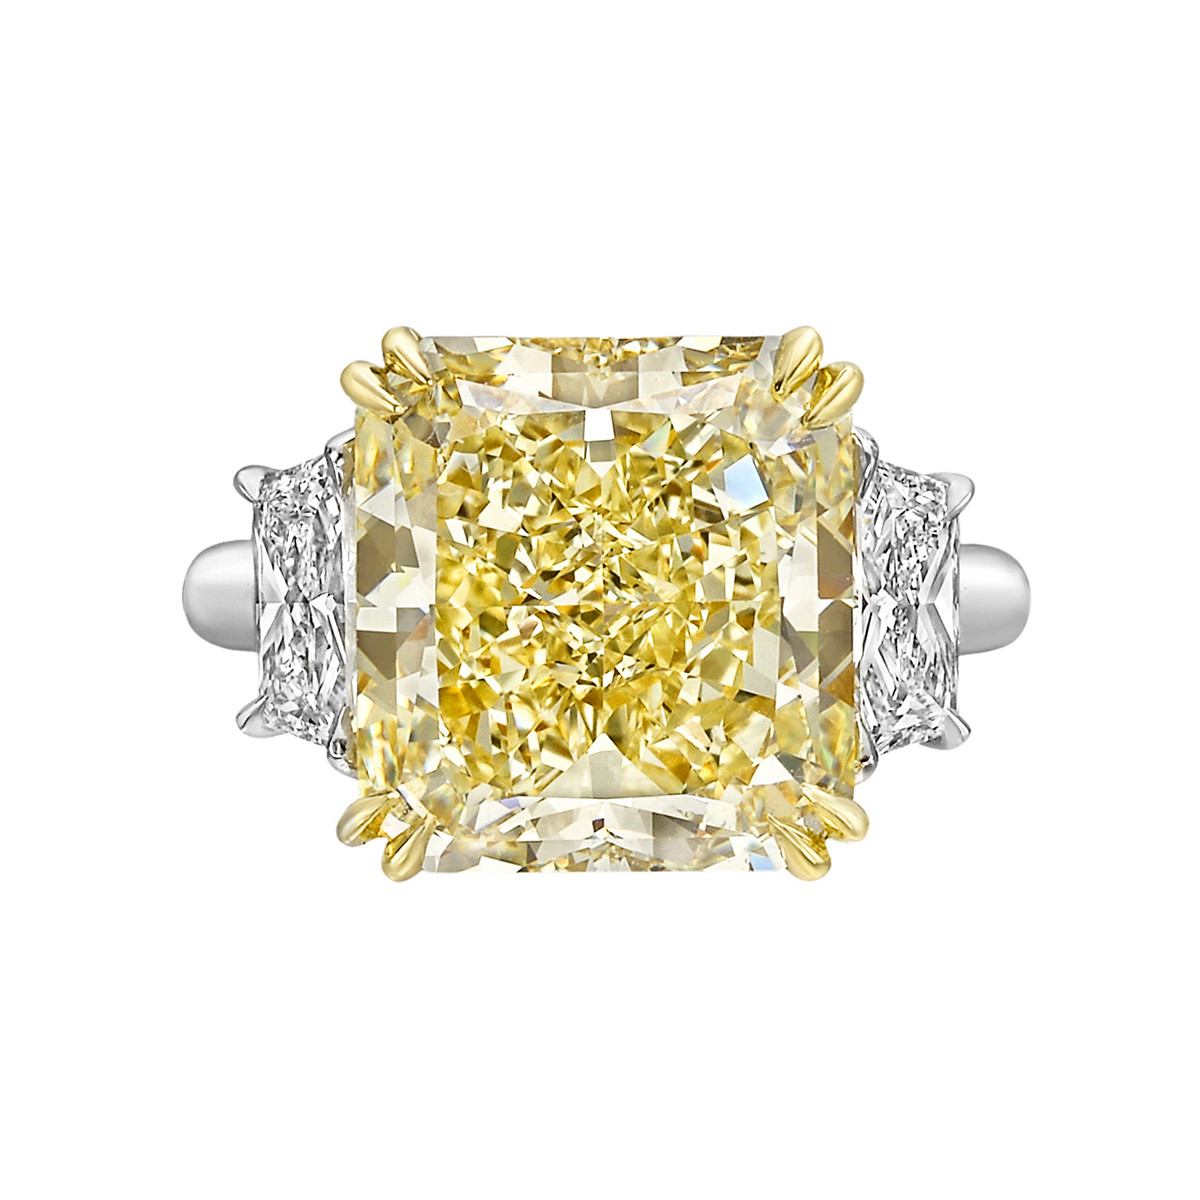 7.39ct Fancy Yellow Diamond Ring (VS1)